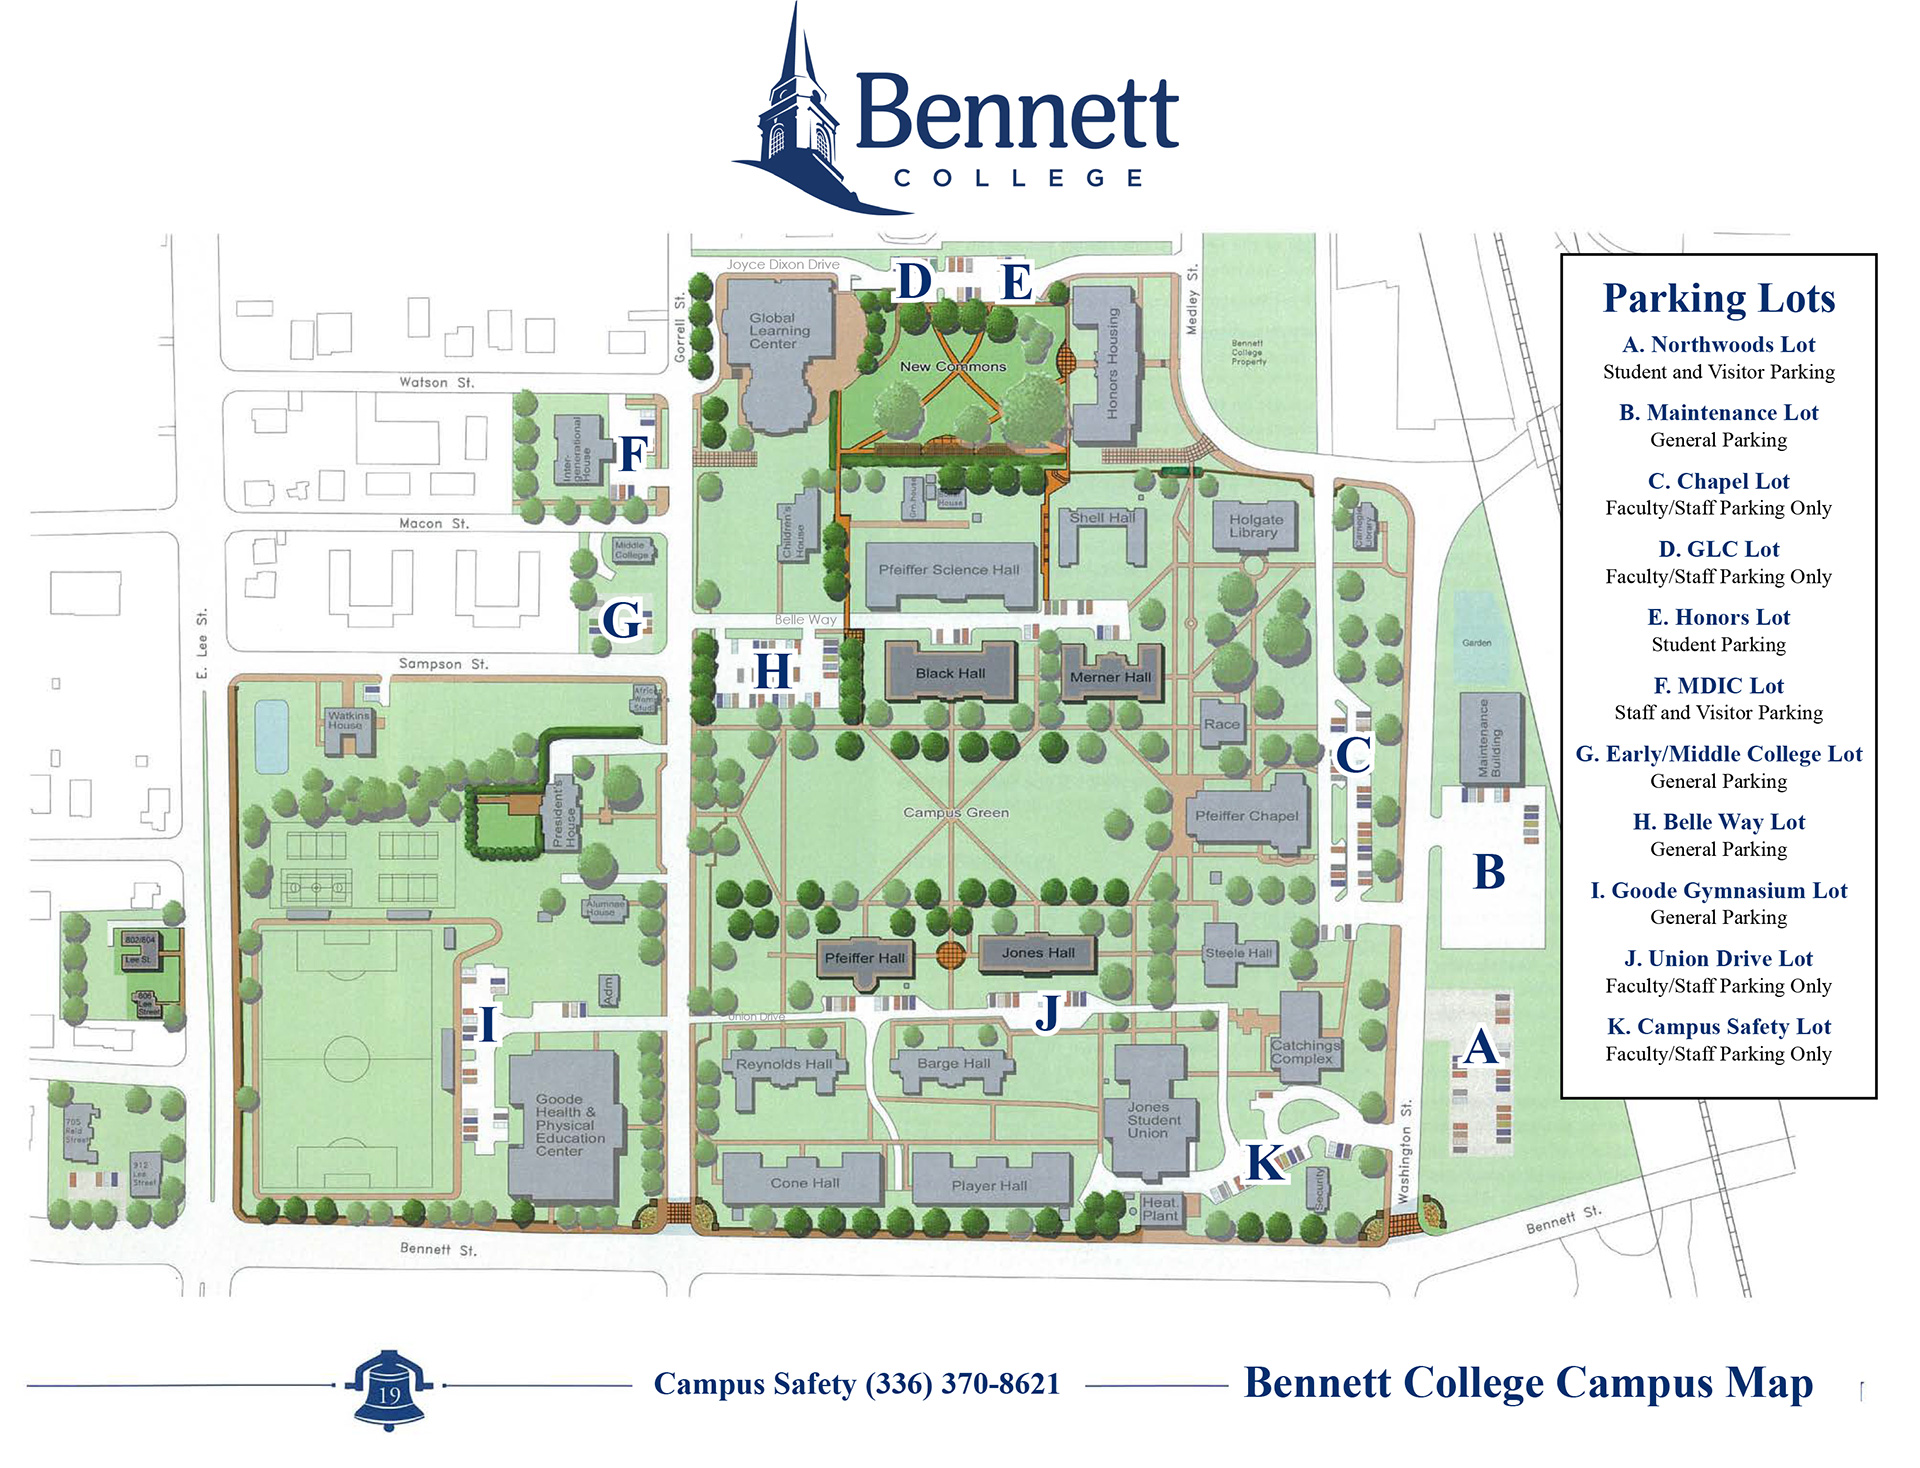 Map - Bennett College Map Of Colleges Greensboro Nc on map of salemburg nc, map of atlanta, map of raleigh nc, map of columbus ga, map of saxapahaw nc, map of charlotte nc, map of memphis tn, map of greenville nc, map of hog island nc, map of charlottesville nc, map of bunnlevel nc, map of moyock nc, map of ferguson nc, map of north carolina, map of clarksville nc, map of asheville nc, map of ogden nc, map of orange co nc, map of biltmore forest nc, map of griffin nc,